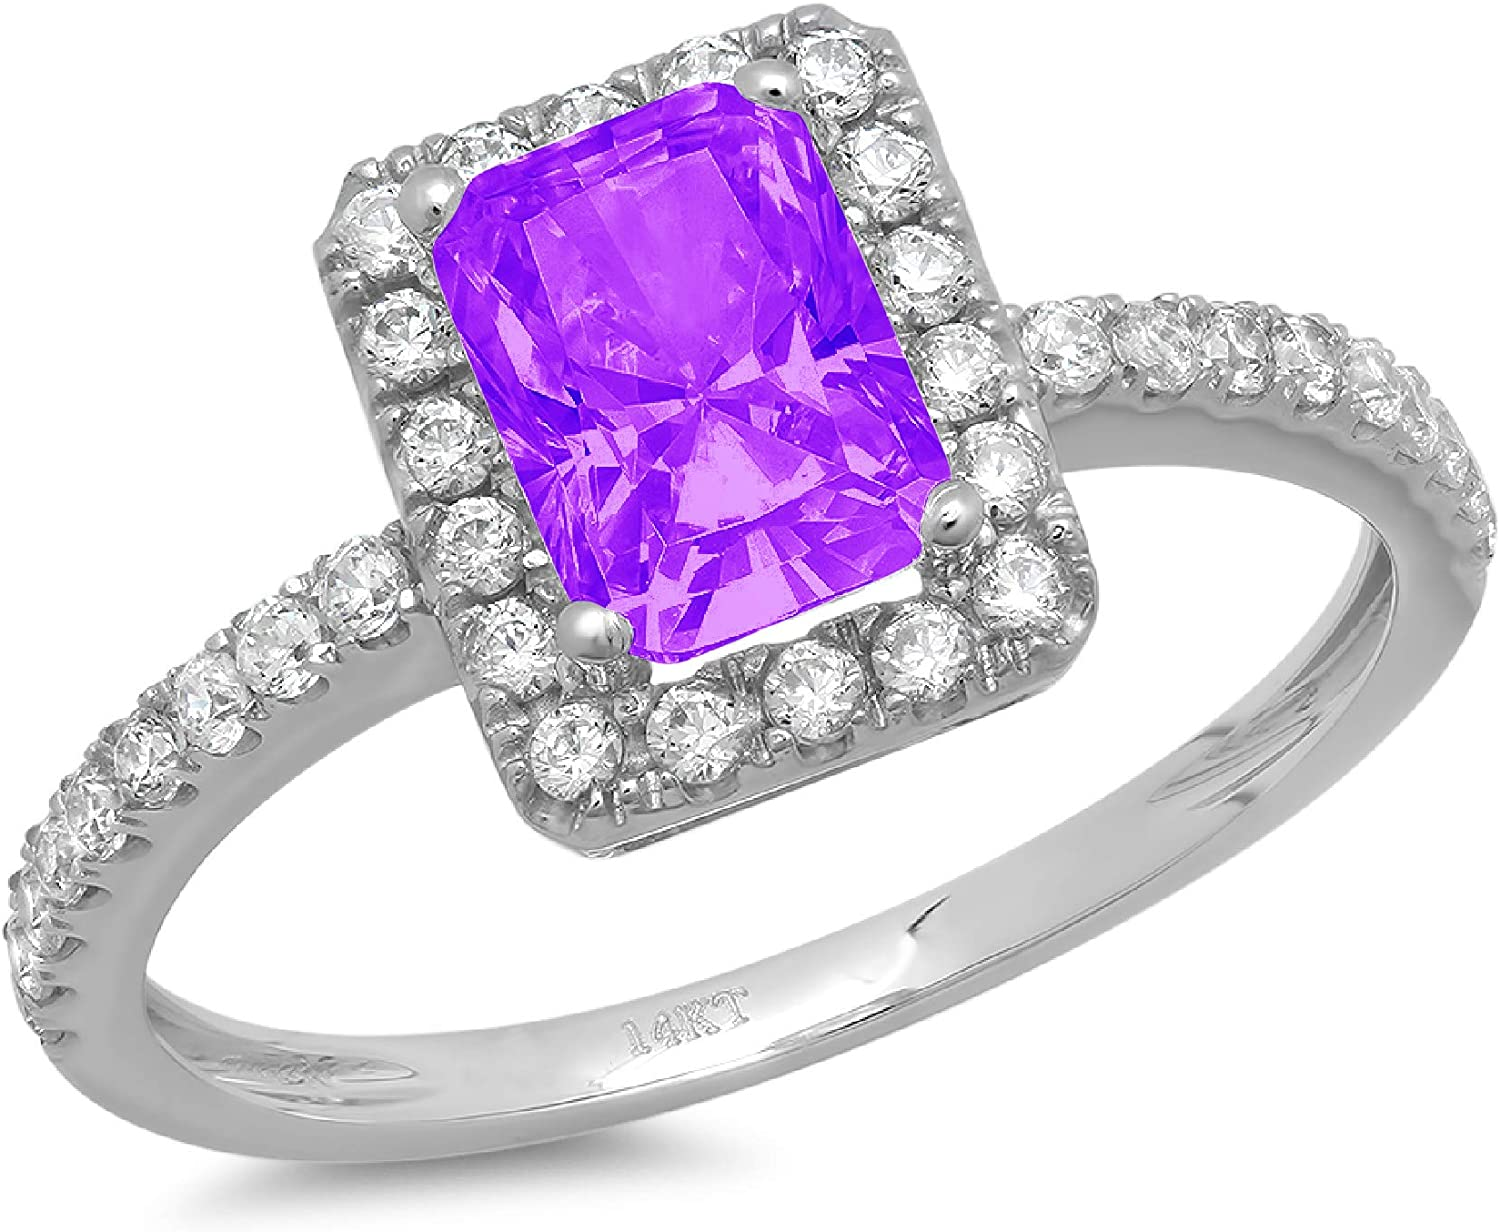 1.95ct Brilliant Emerald Cut Solitaire with Accent Halo Natural Purple Amethyst Gem Stone VVS1 Designer Modern Statement Ring Solid 14k White Gold Clara Pucci